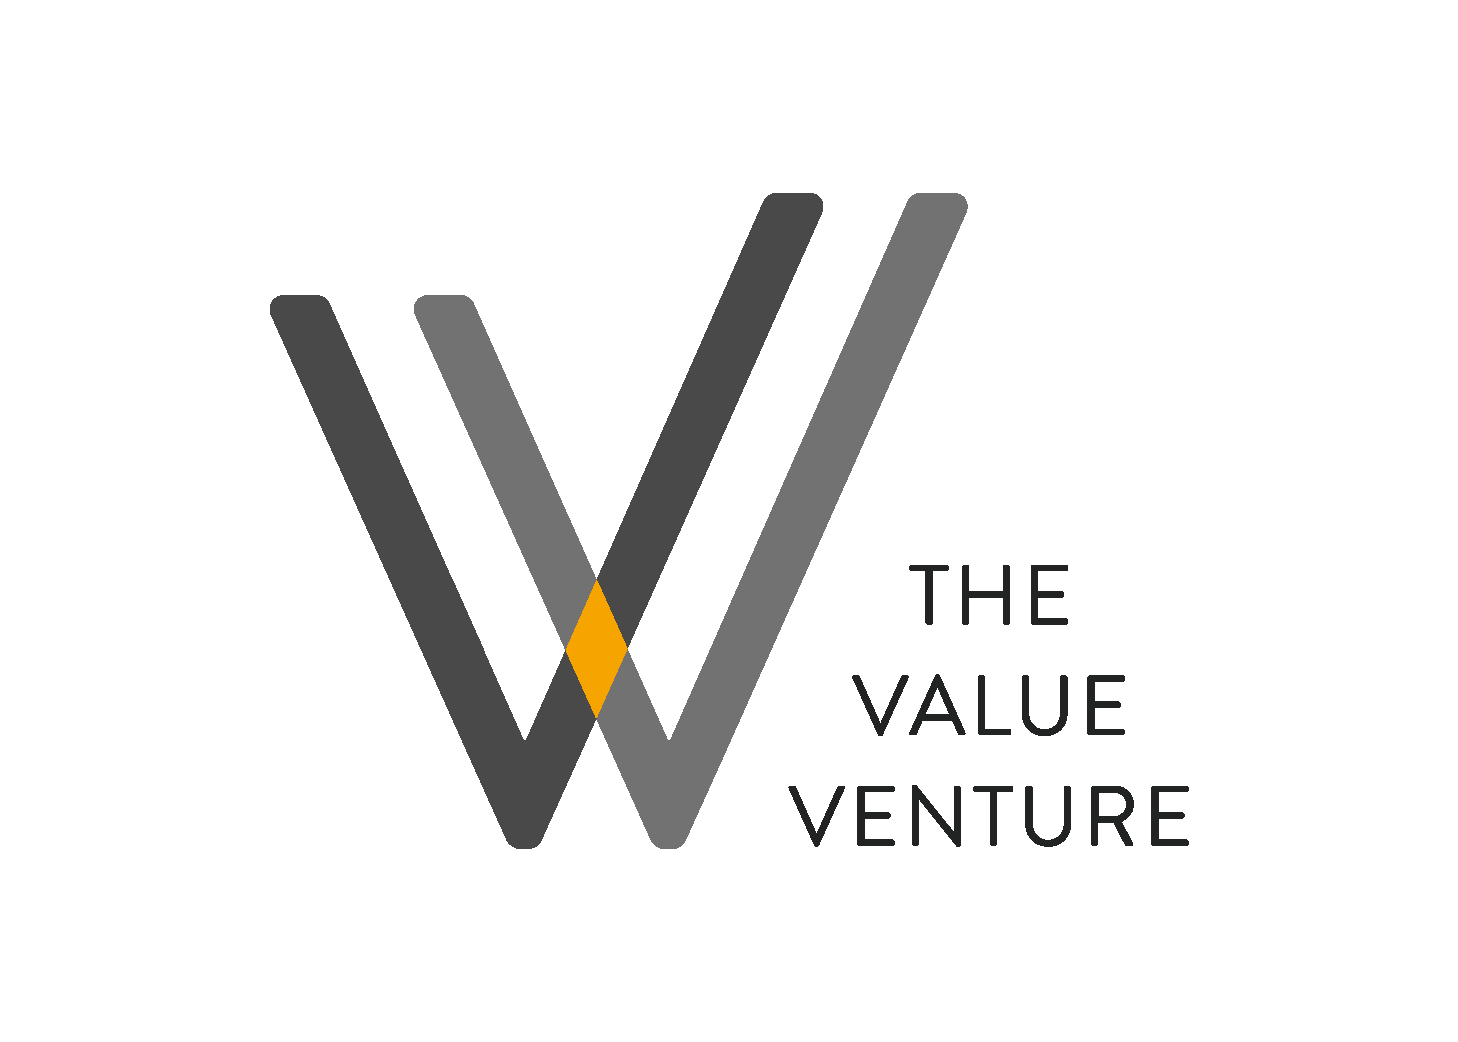 THE VALUE VENTURE